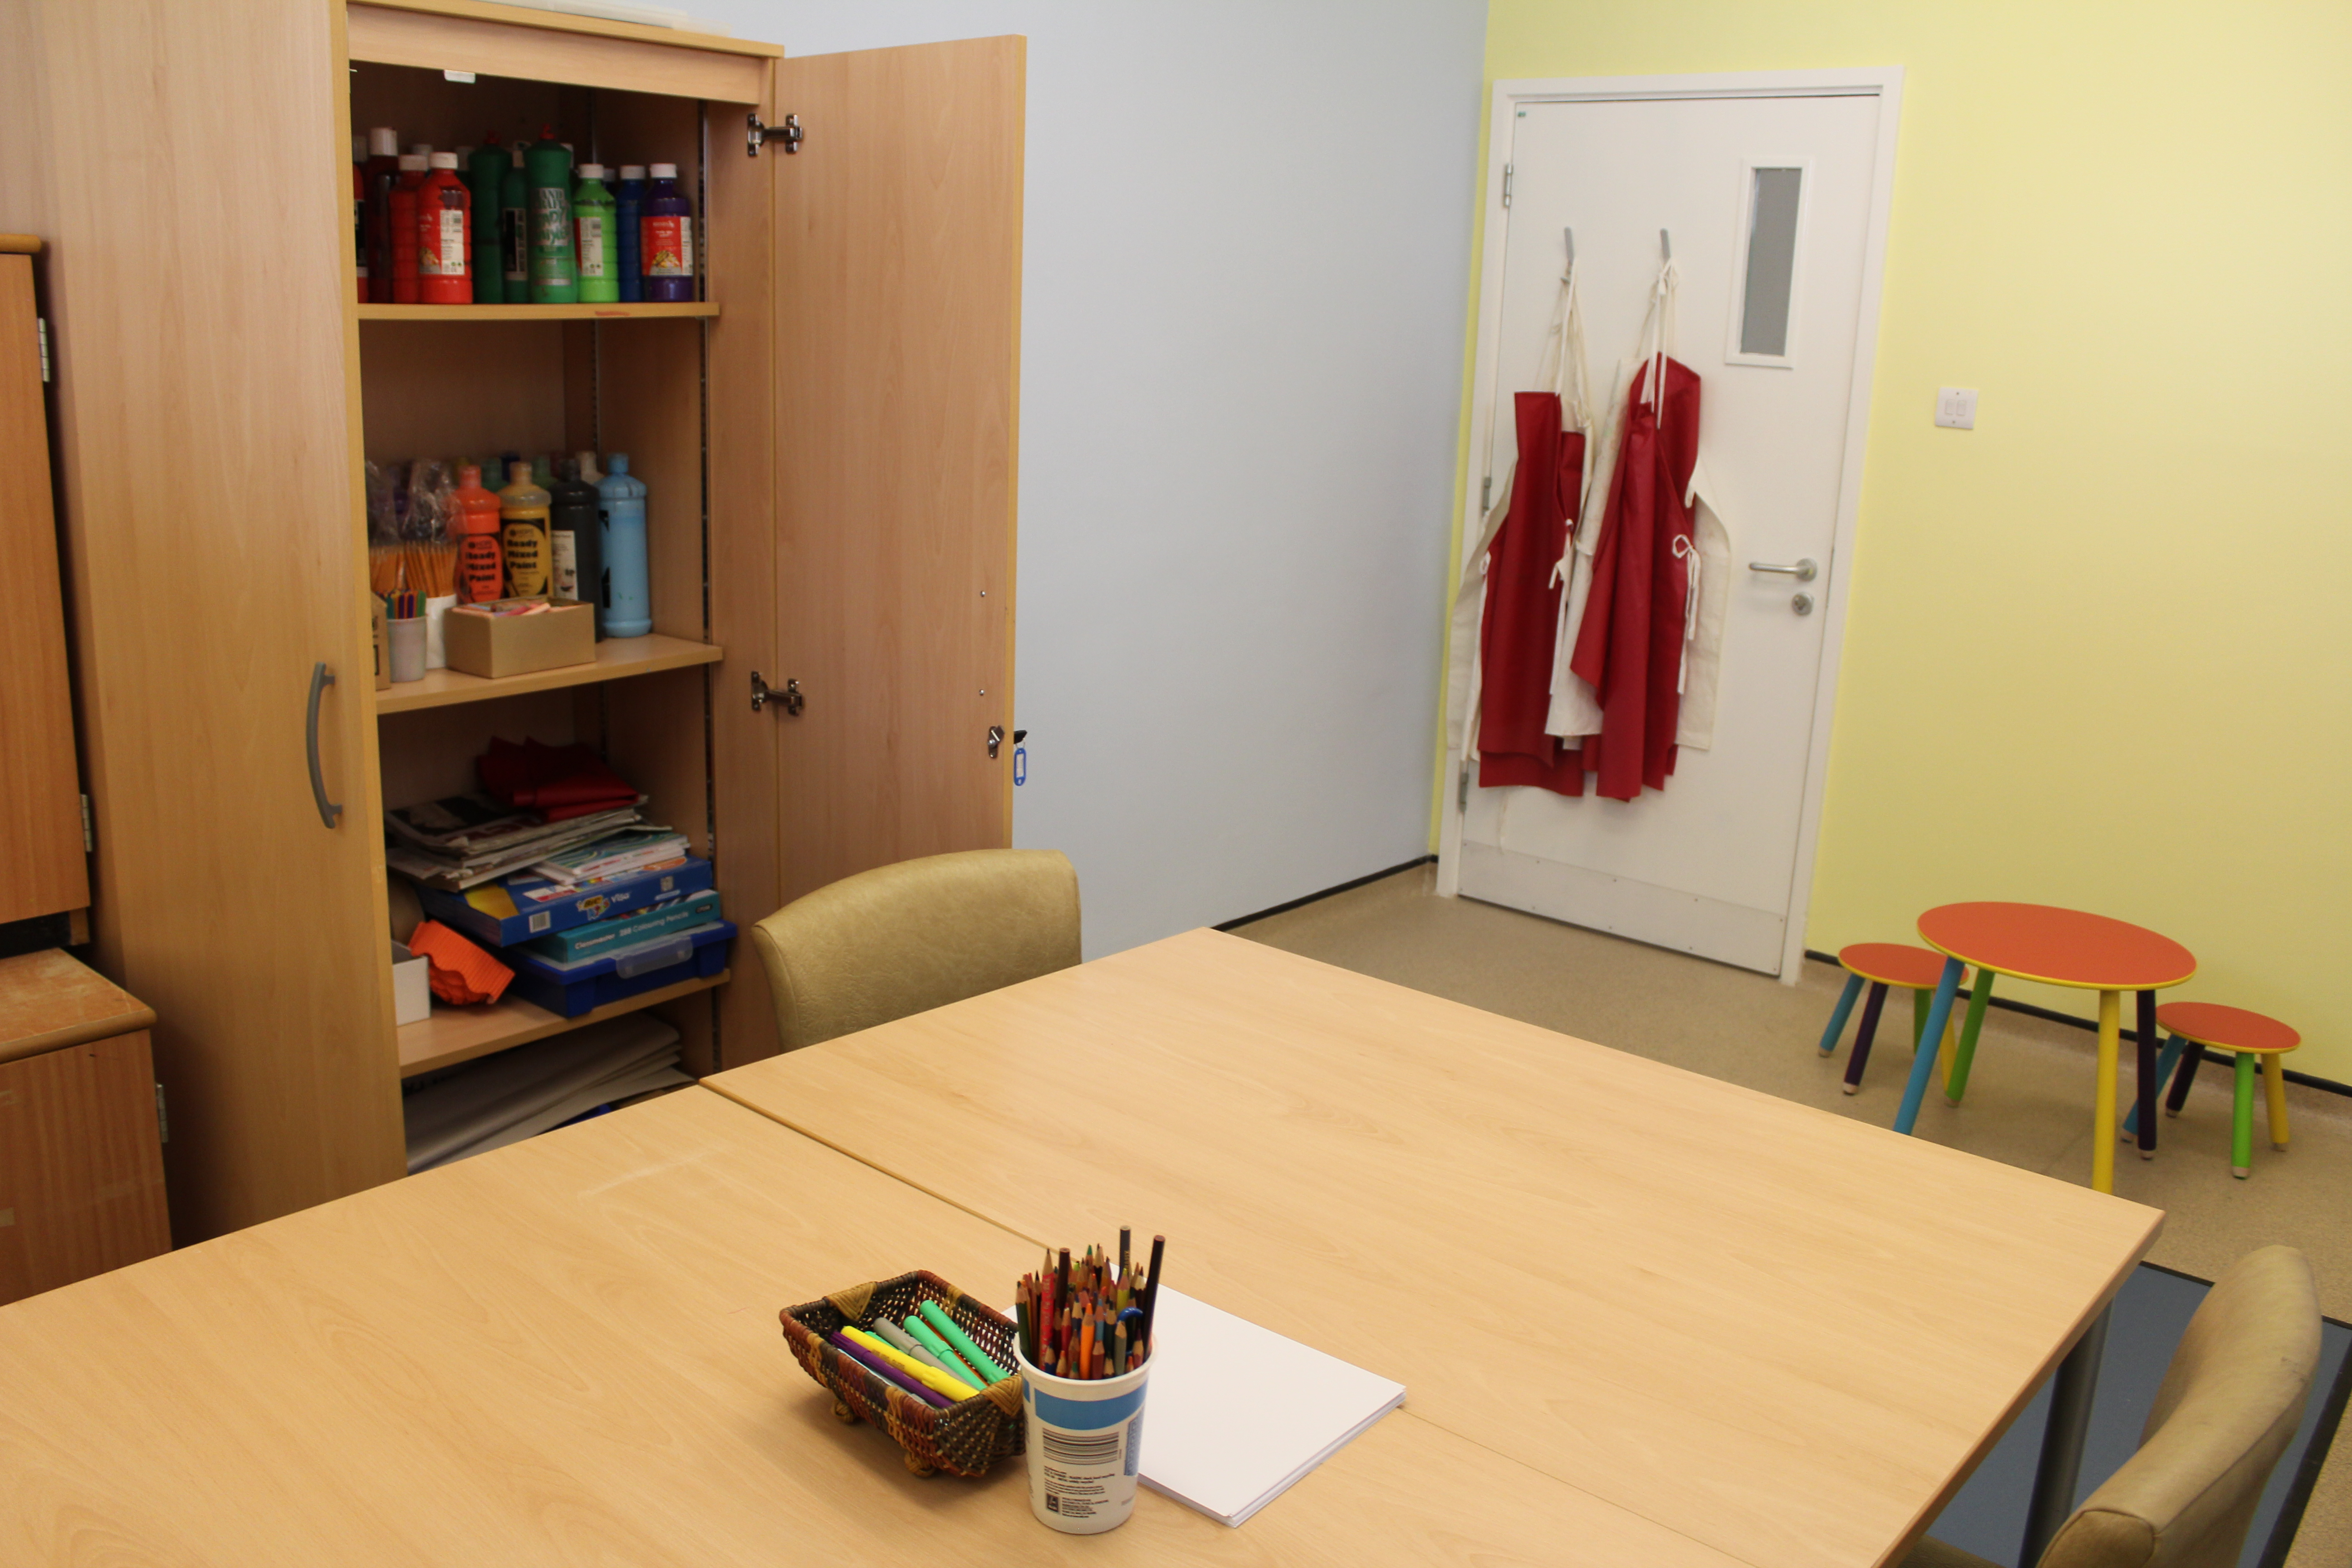 Children help transform art and assessment rooms at Bournemouth clinic